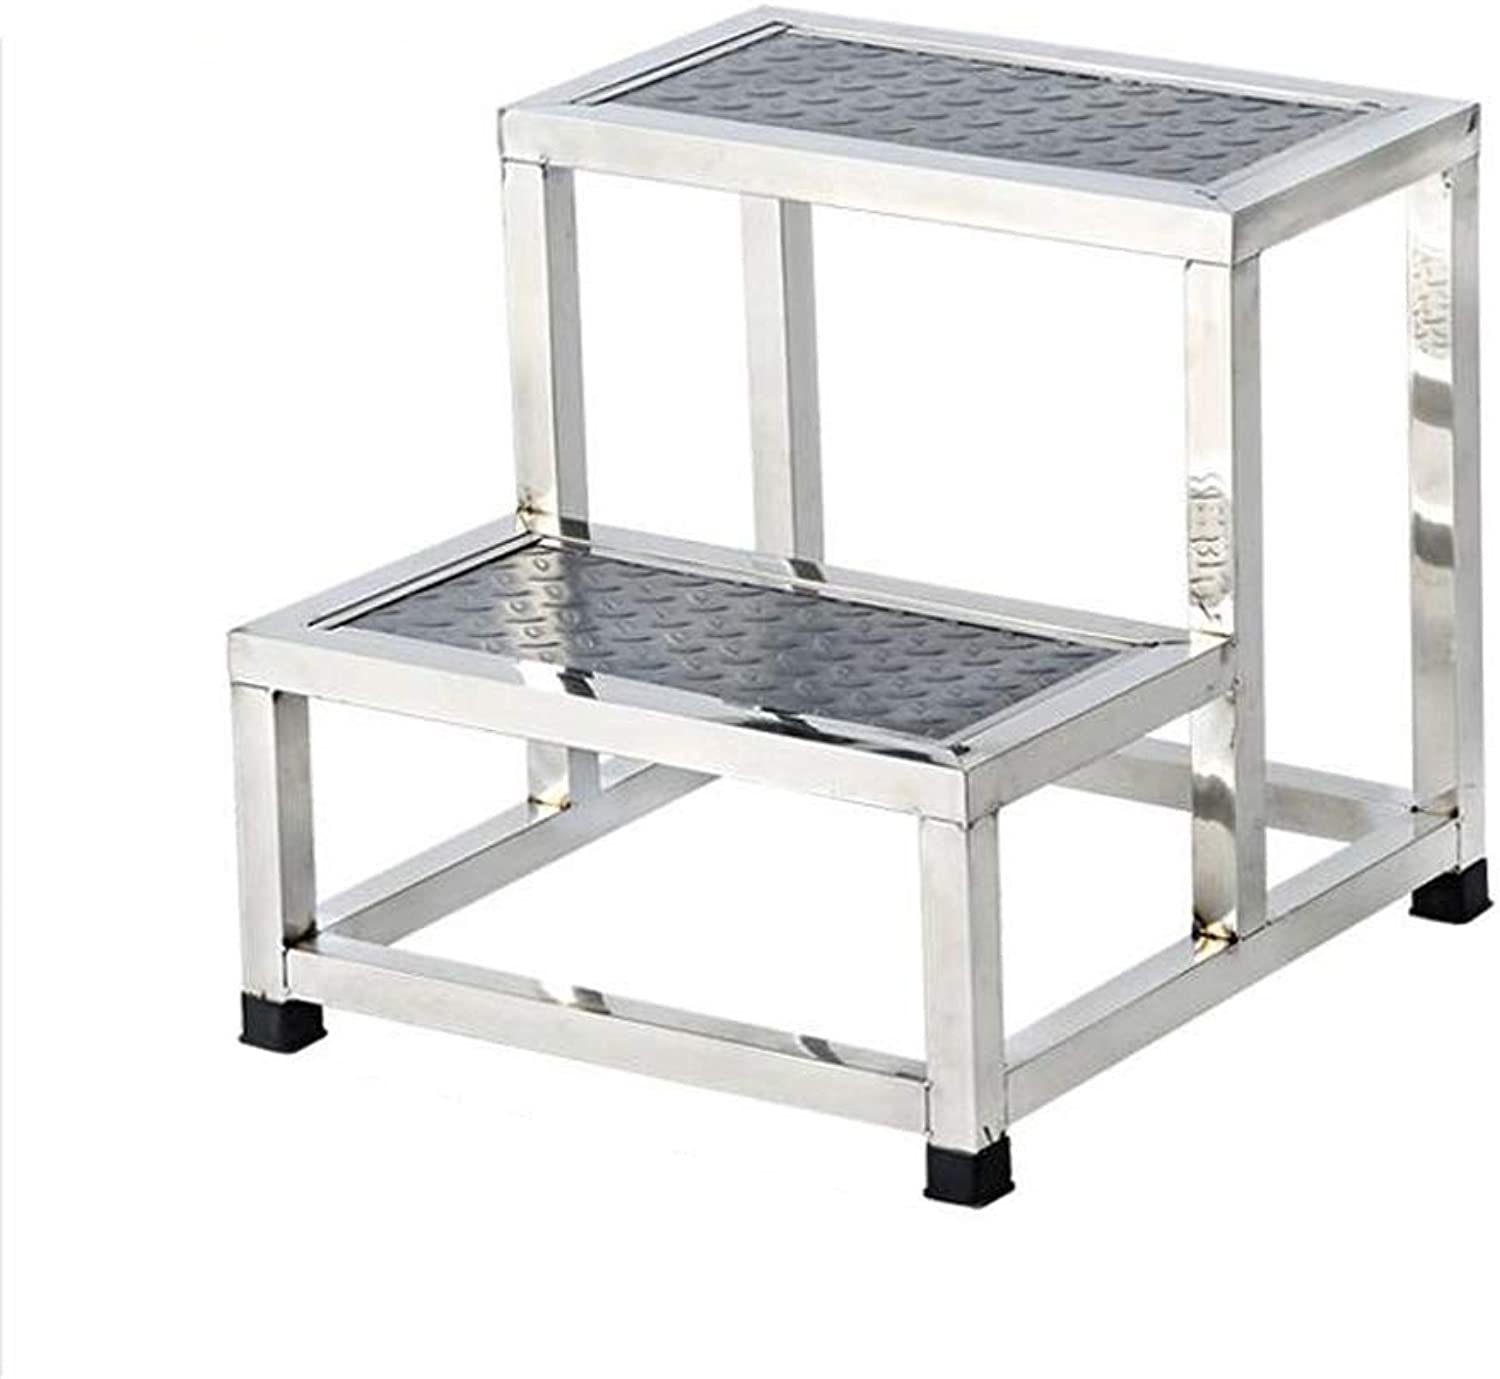 WaWei Step Stool Hospital Check Double Step Stool Home Clinic Two Step Stainless Steel Step Ladder Step Stool Small Staircase Step Stool (Size   40CM×45CM×40CM)